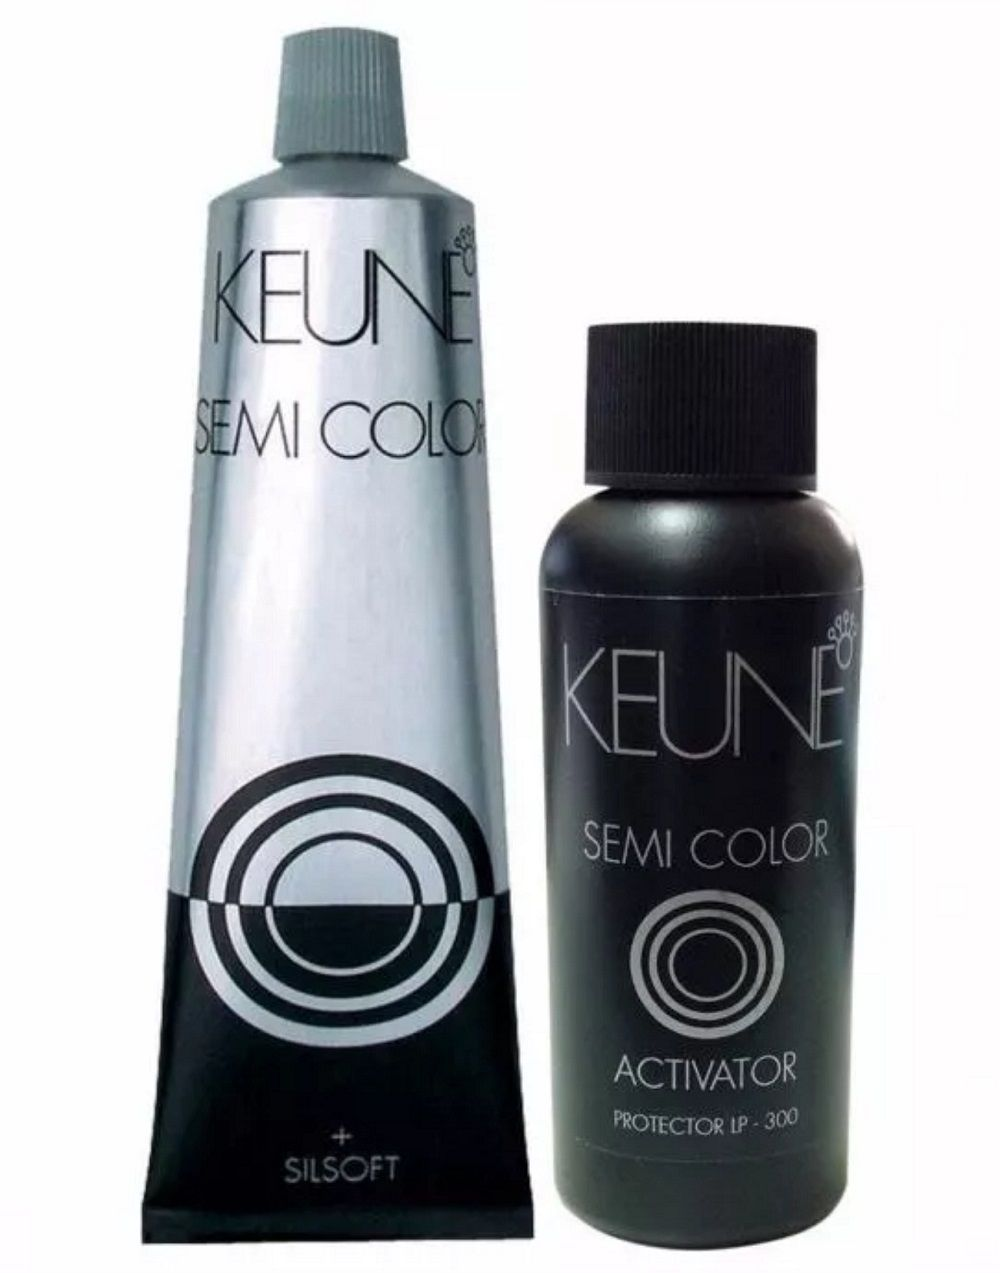 Kit Keune Semi Color 60ml - Cor 1 - Preto + Ativador 60ml